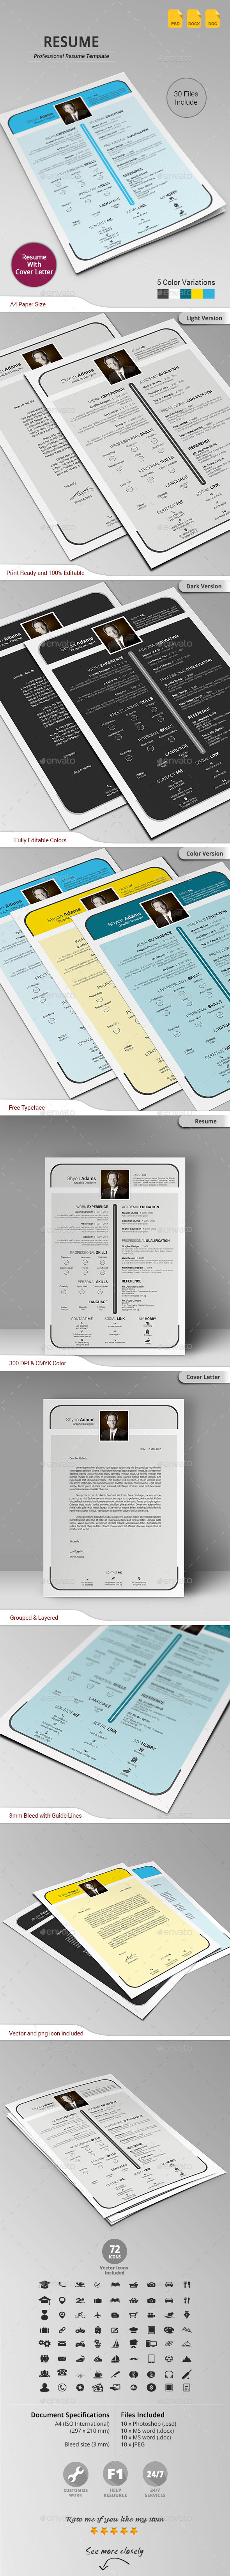 GraphicRiver Resume 10763544